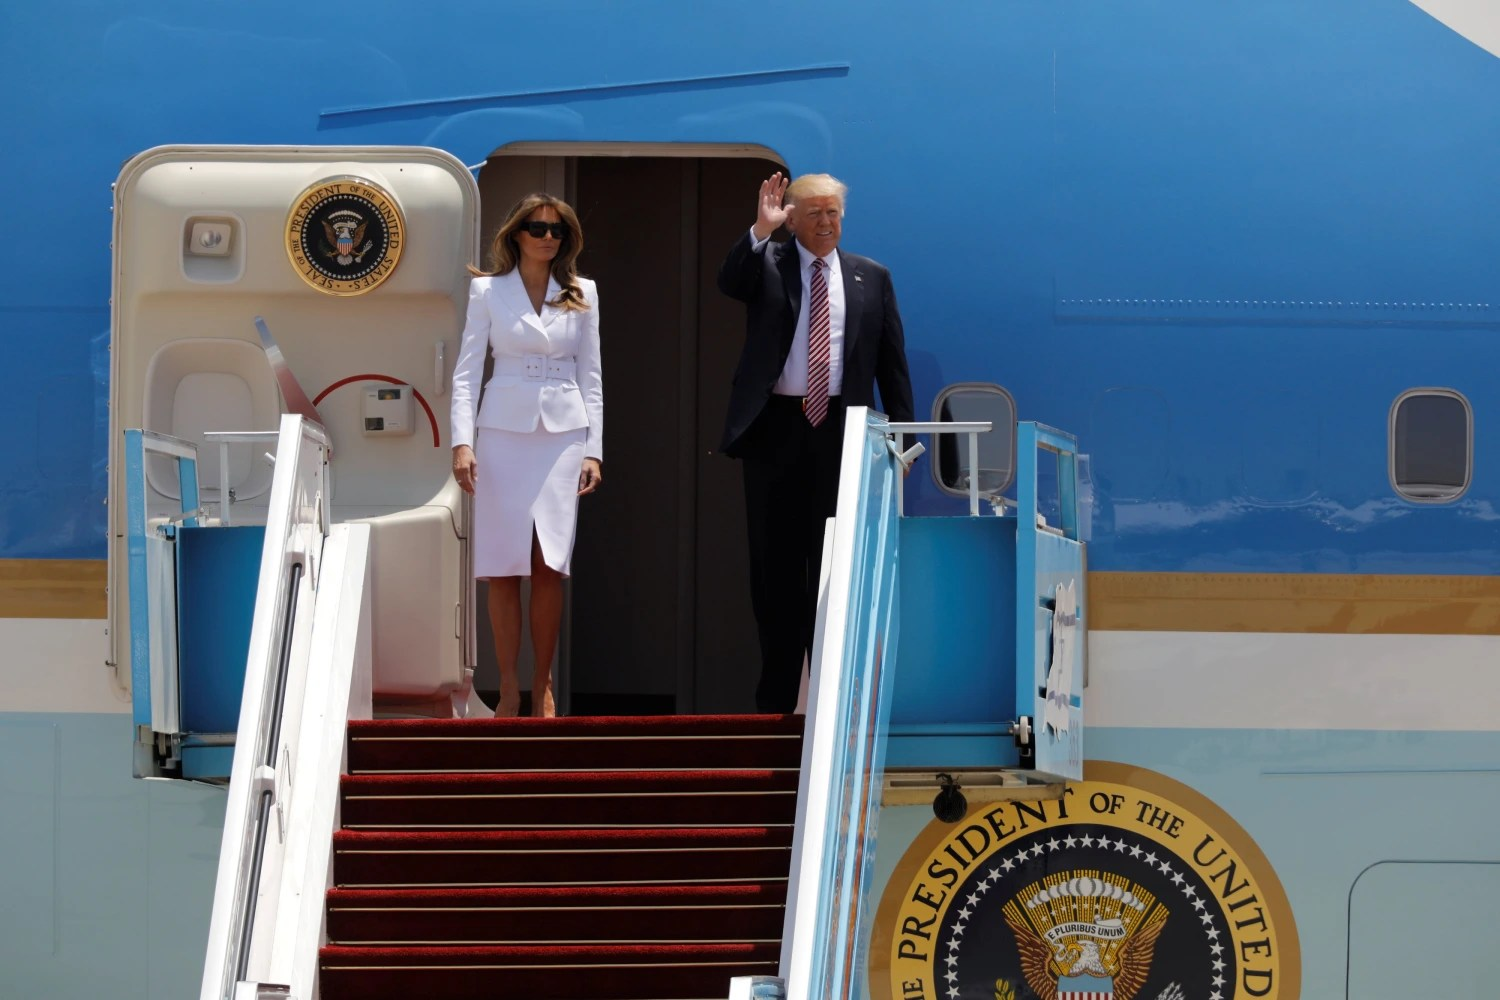 Melania again appears to reject Trump's attempt at holding hands